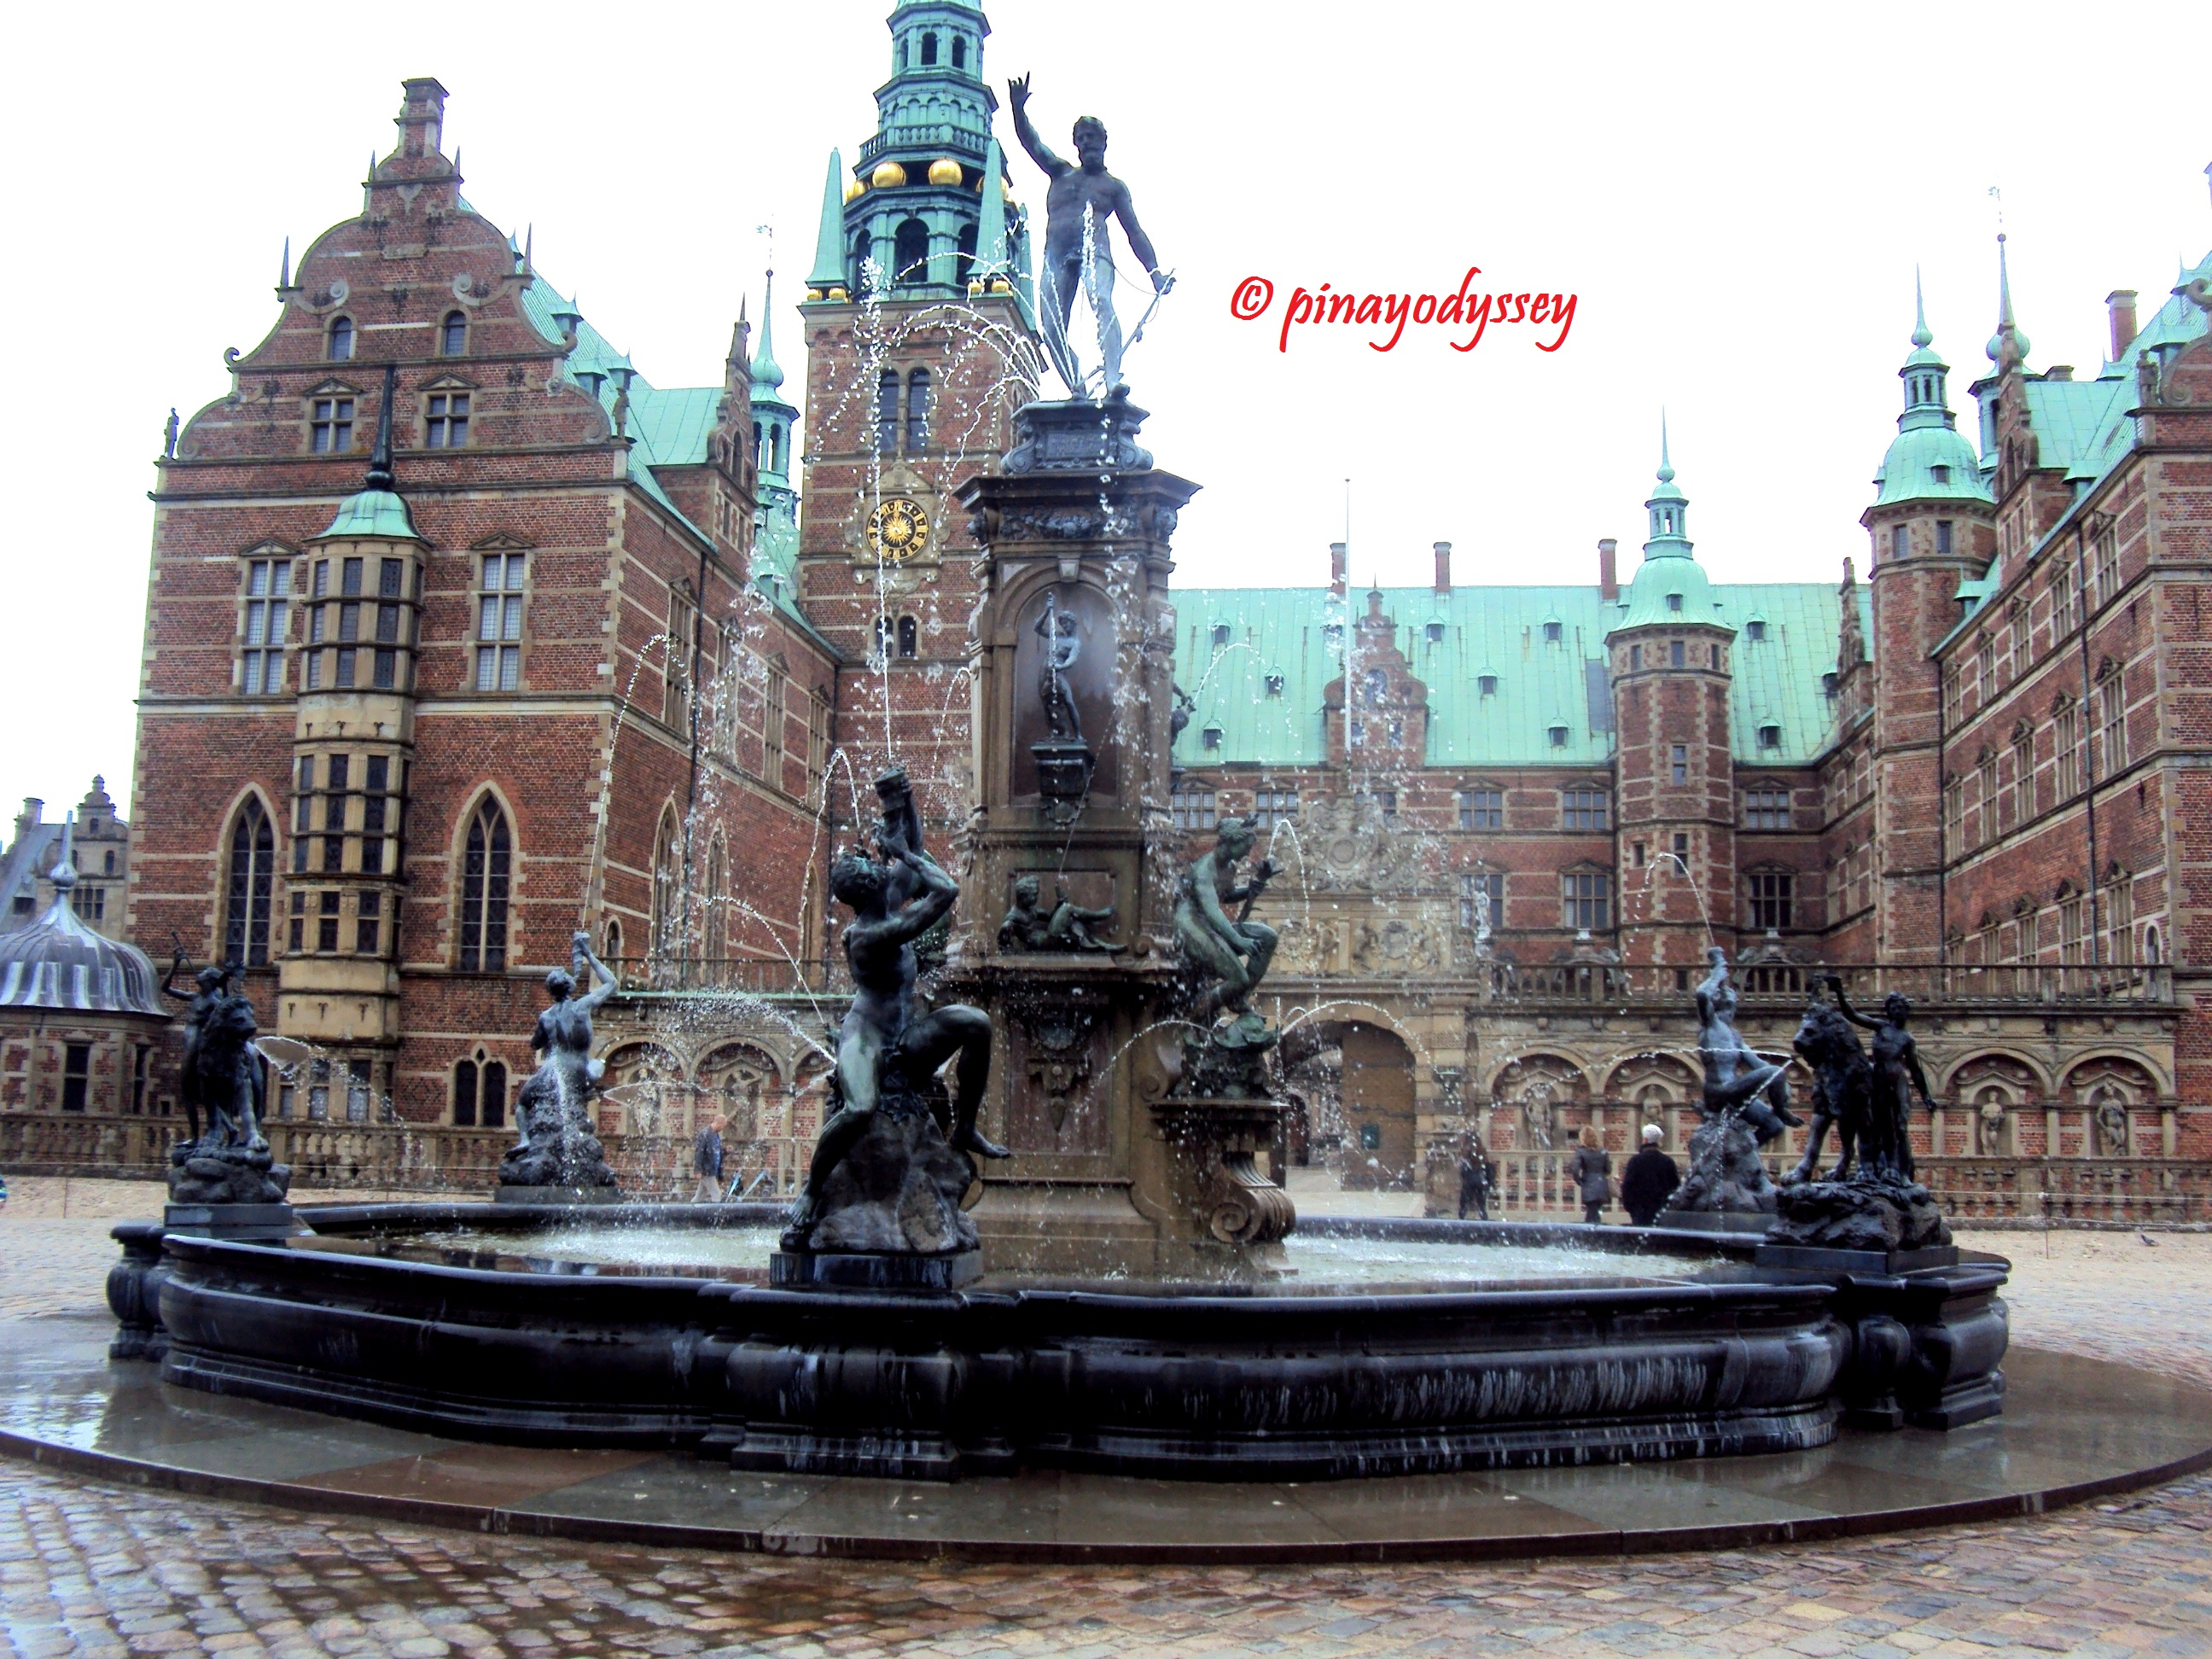 The museum of national history at frederiksborg castle copenhagen - The Neptune Fountain